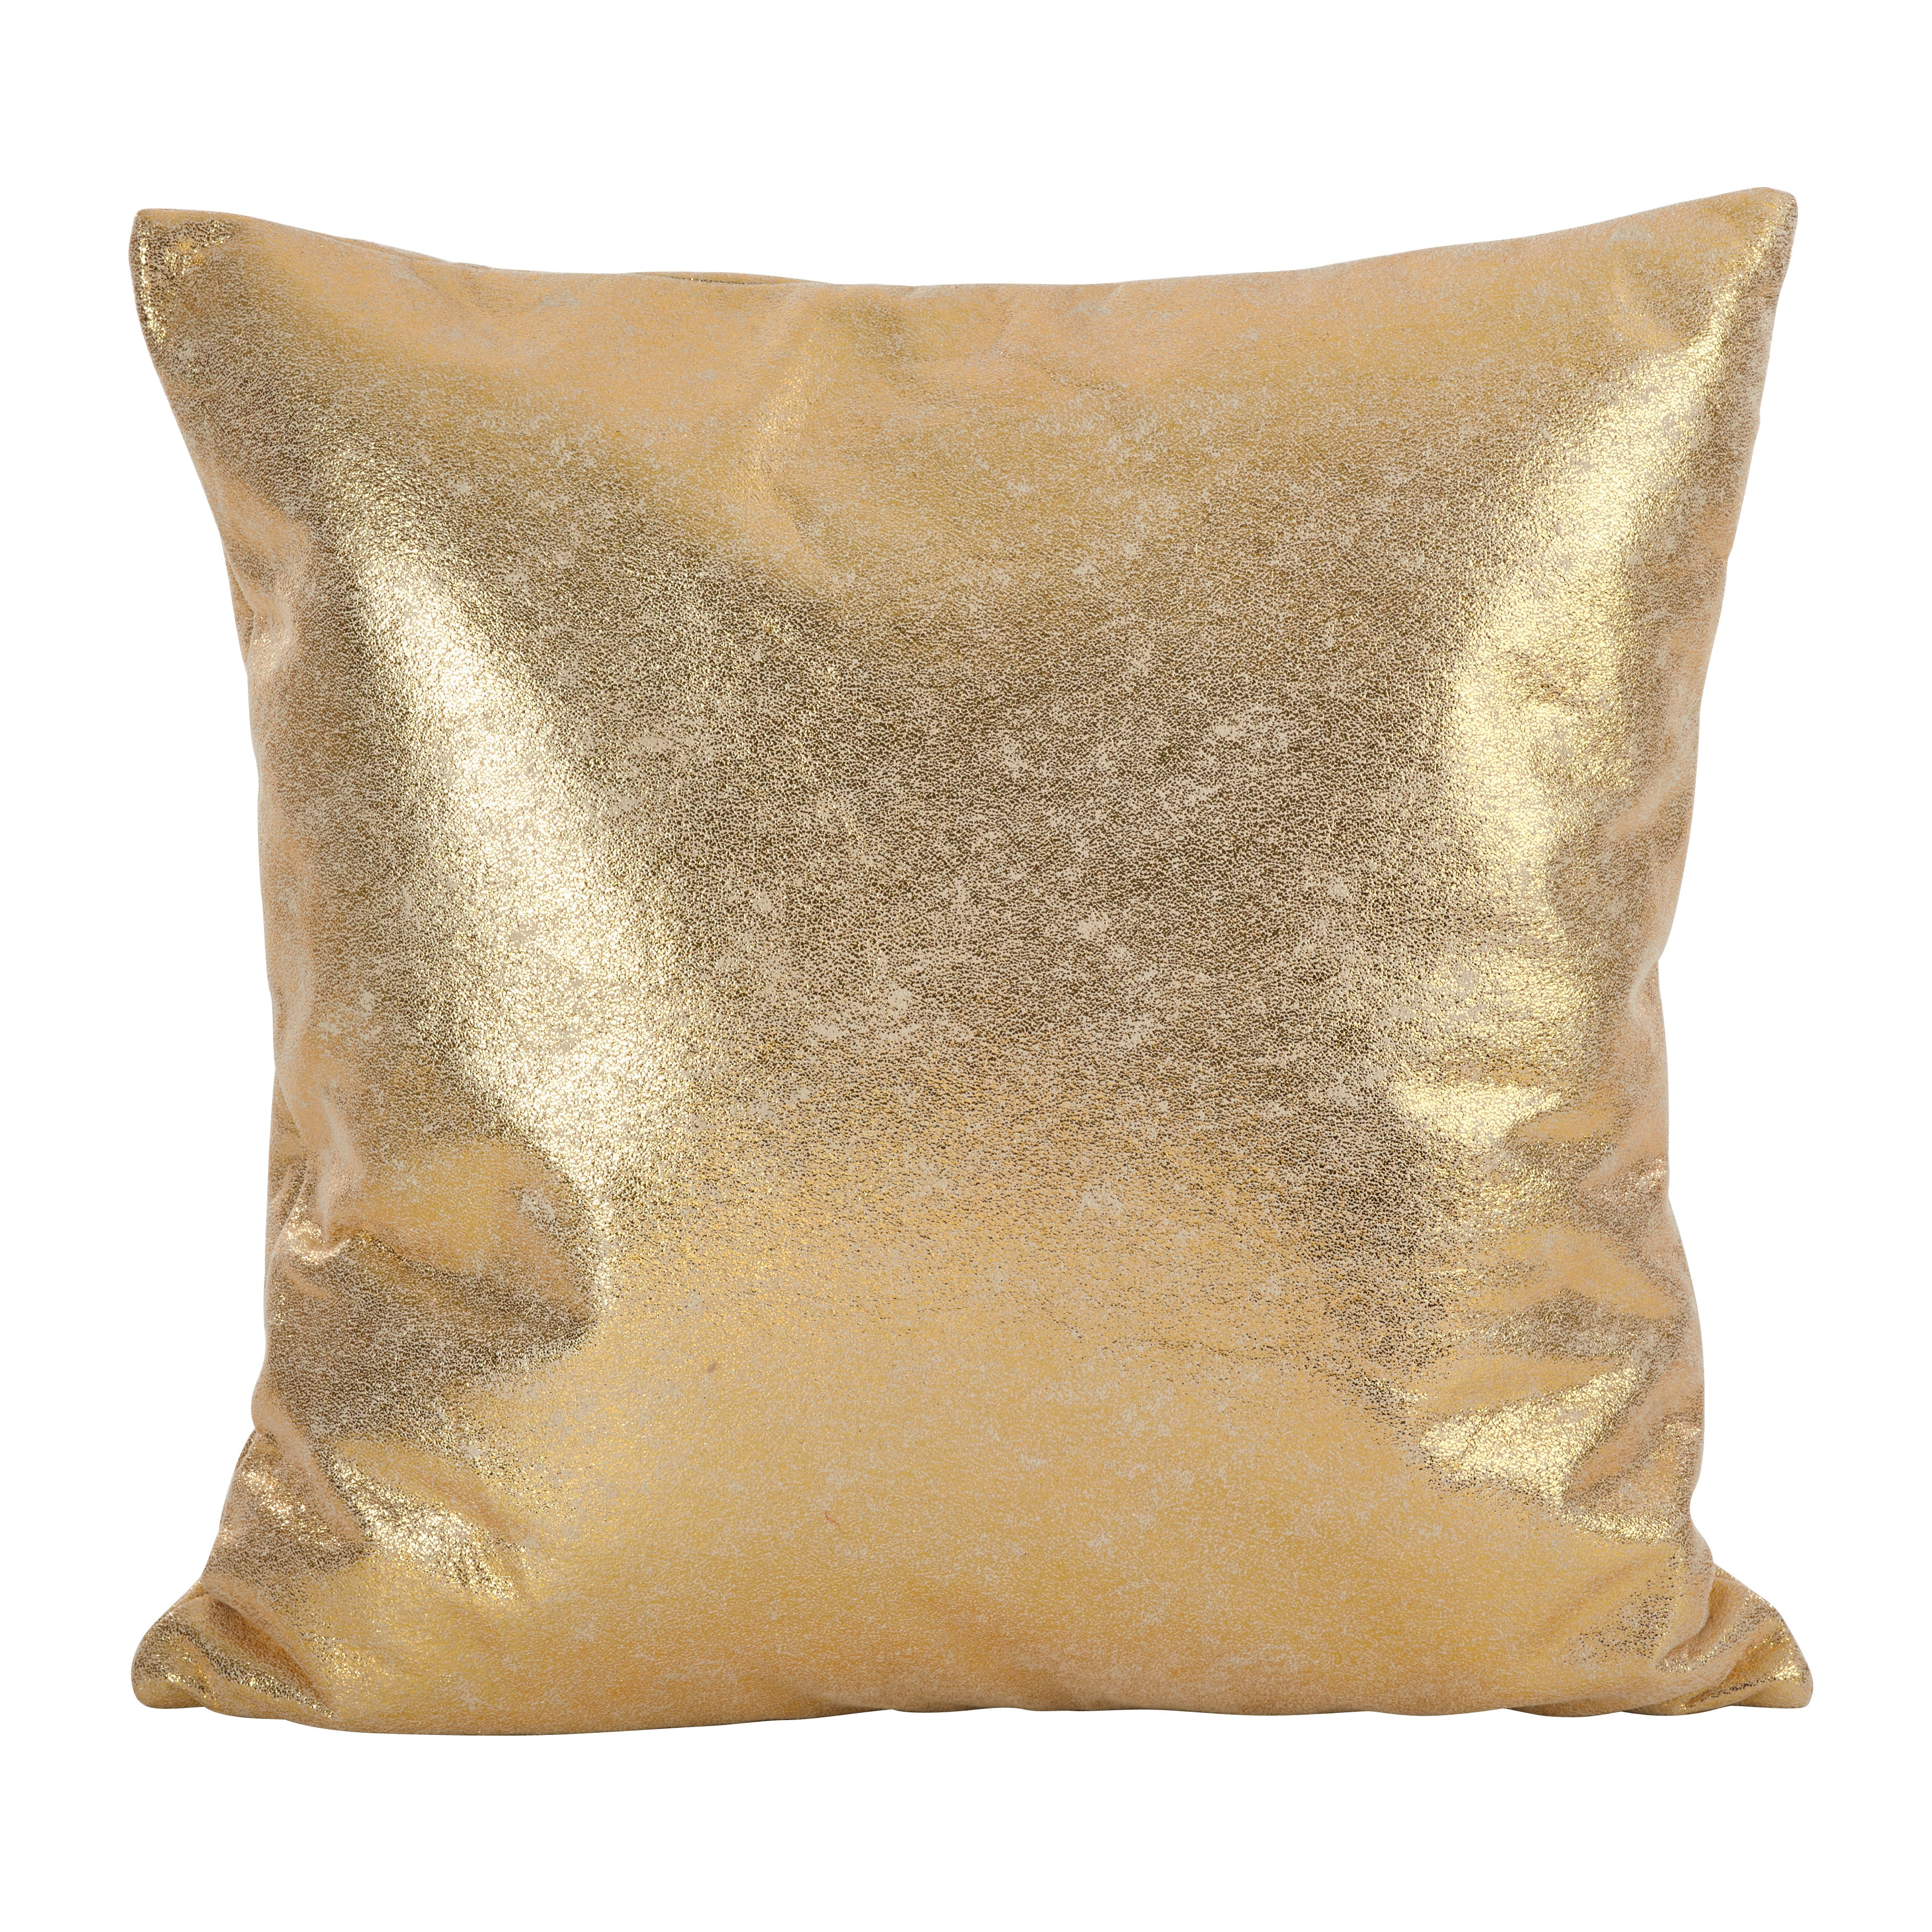 Gold Throw Pillows Online At Our Best Decorative Accessories Deals